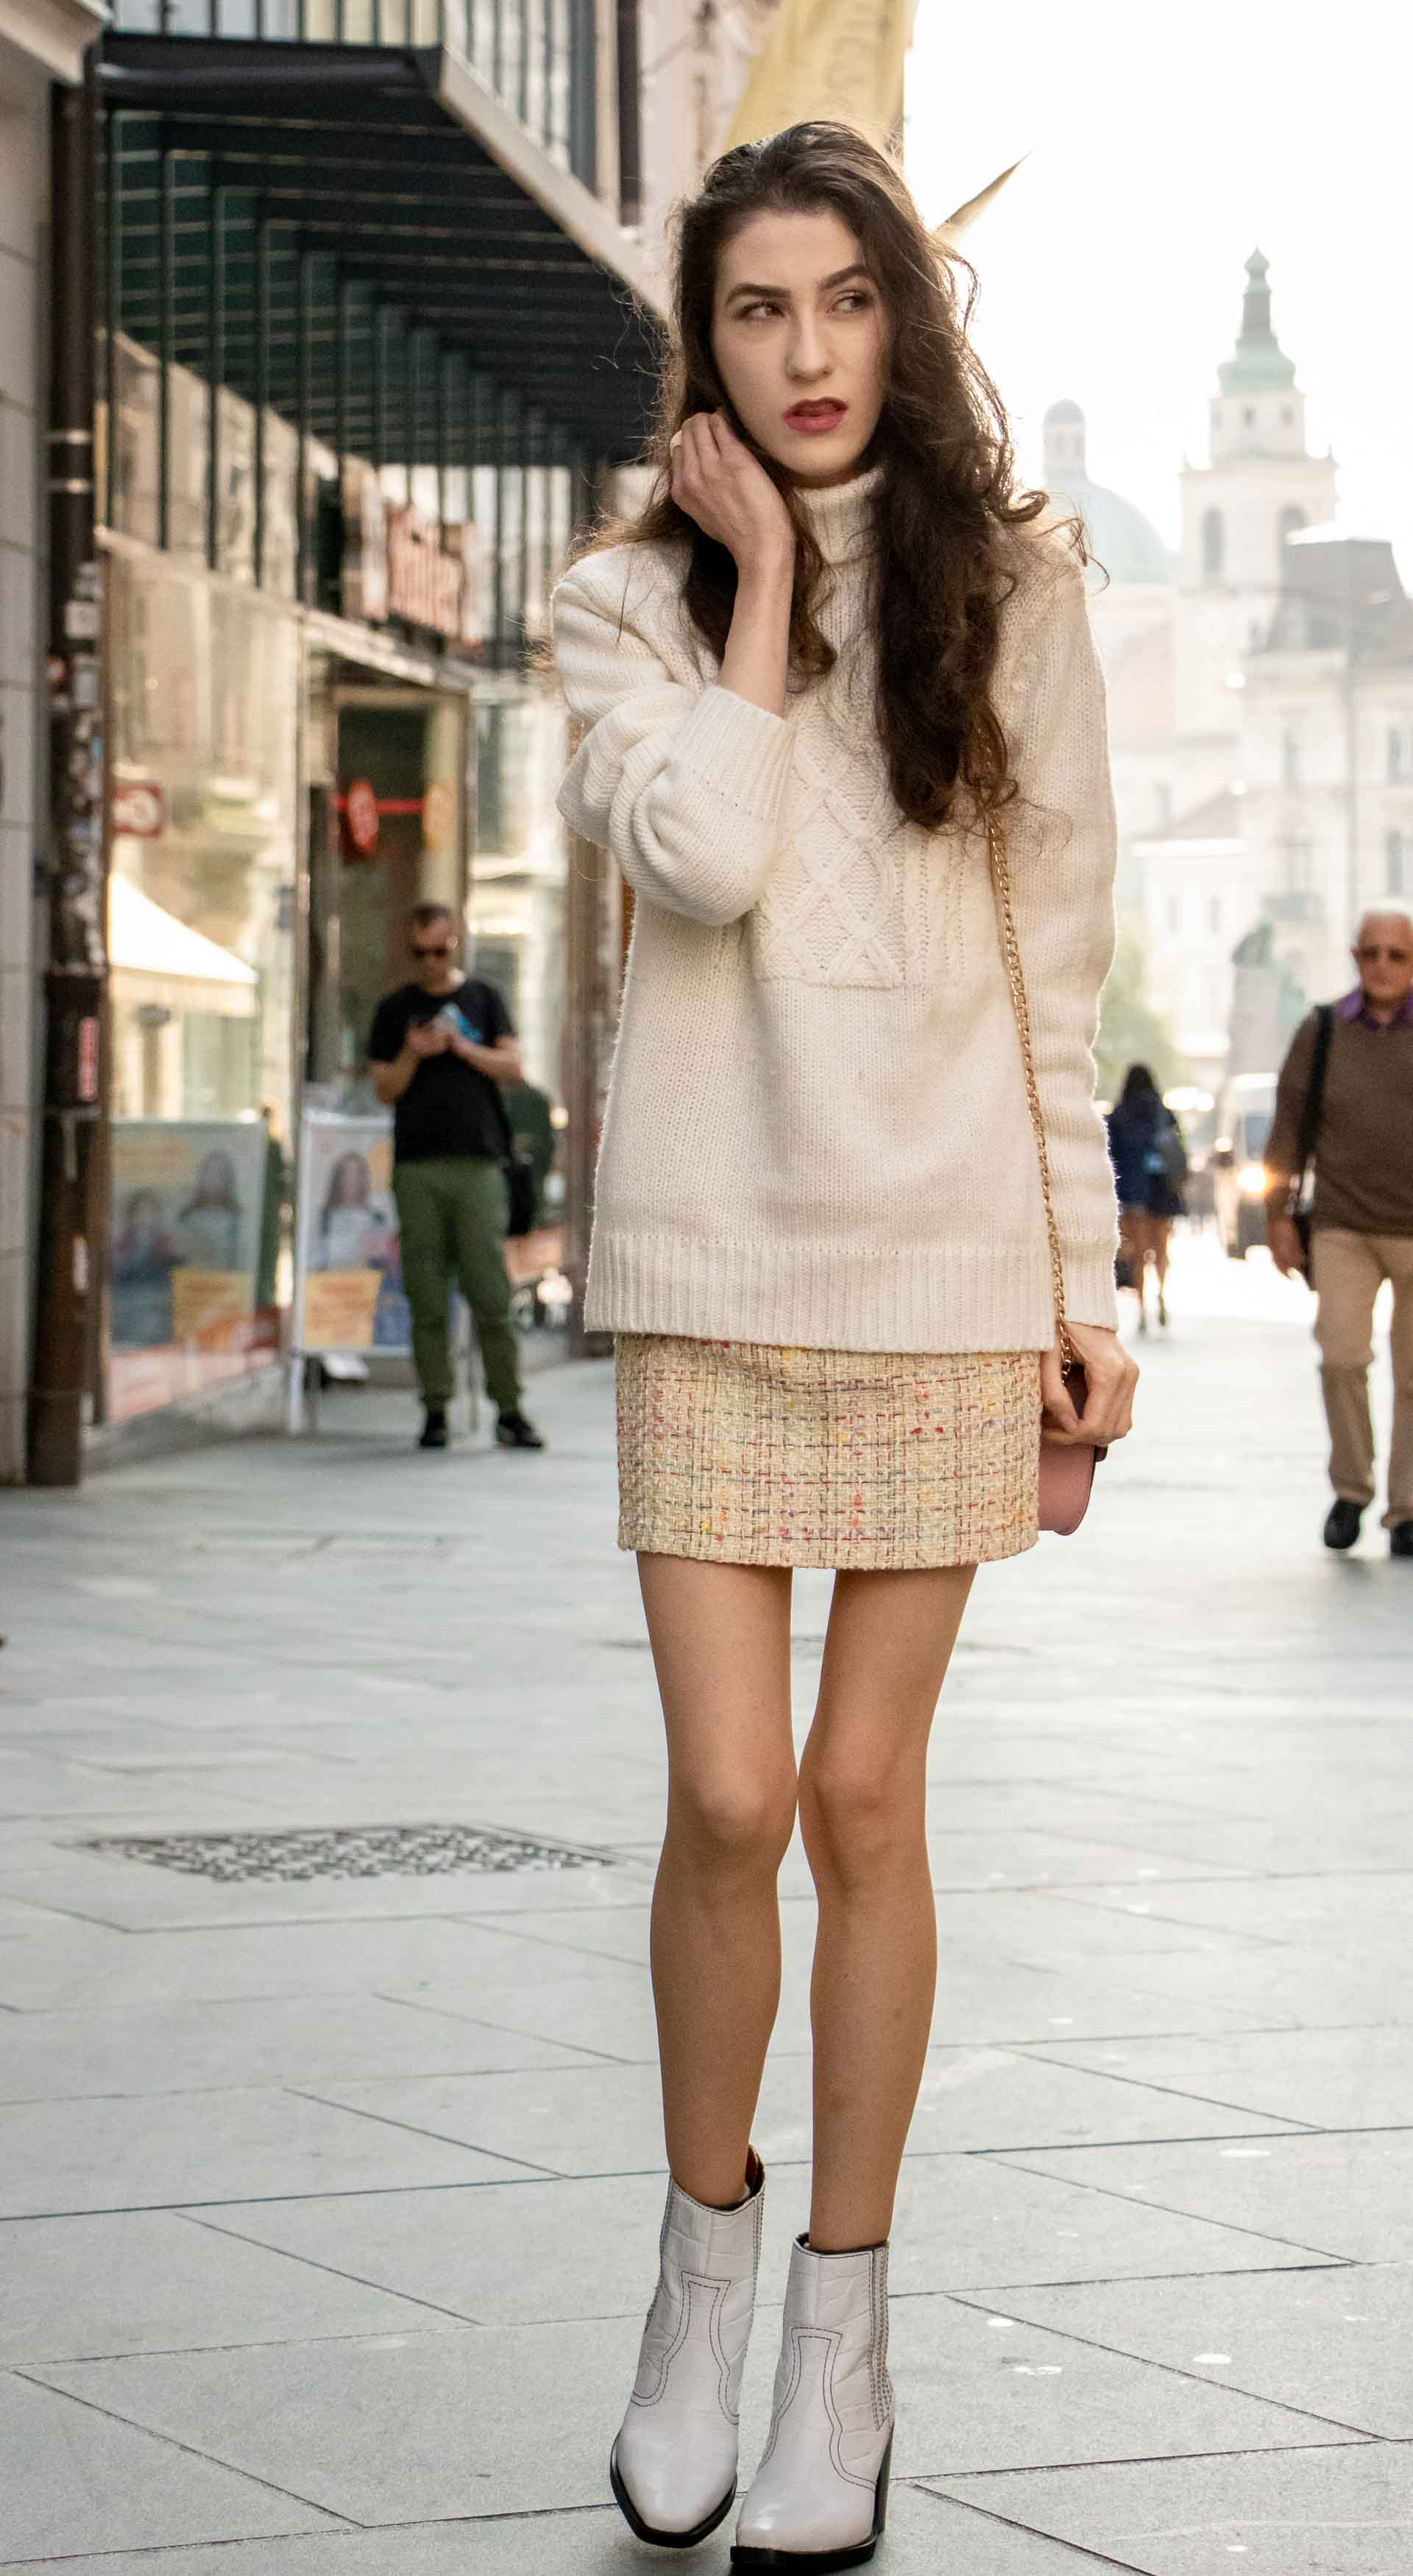 Beautiful Slovenian Fashion Blogger Veronika Lipar of Brunette from Wall dressed in white Ganni Western boots, yellow tweed skirt, white turtleneck sweater, chain strap shoulder bag on the street in the morning in Ljubljana in autumn